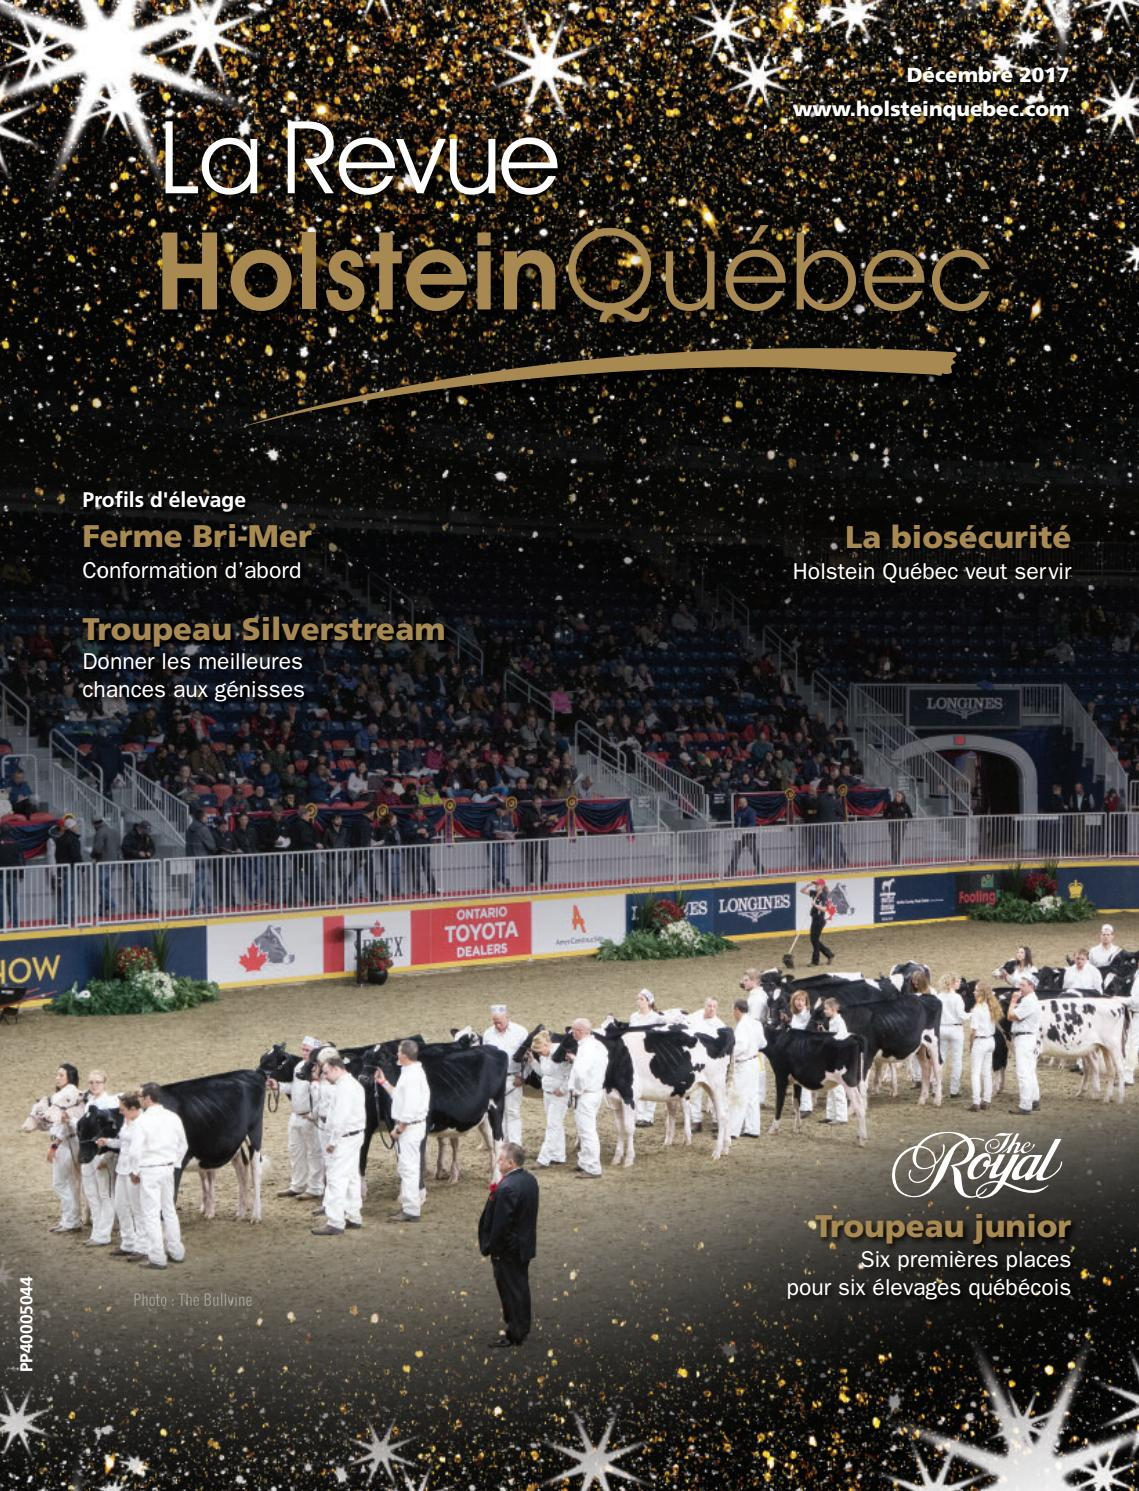 Holstein 2017 Dec Issuu By Revue La Québec f7gvyb6IYm